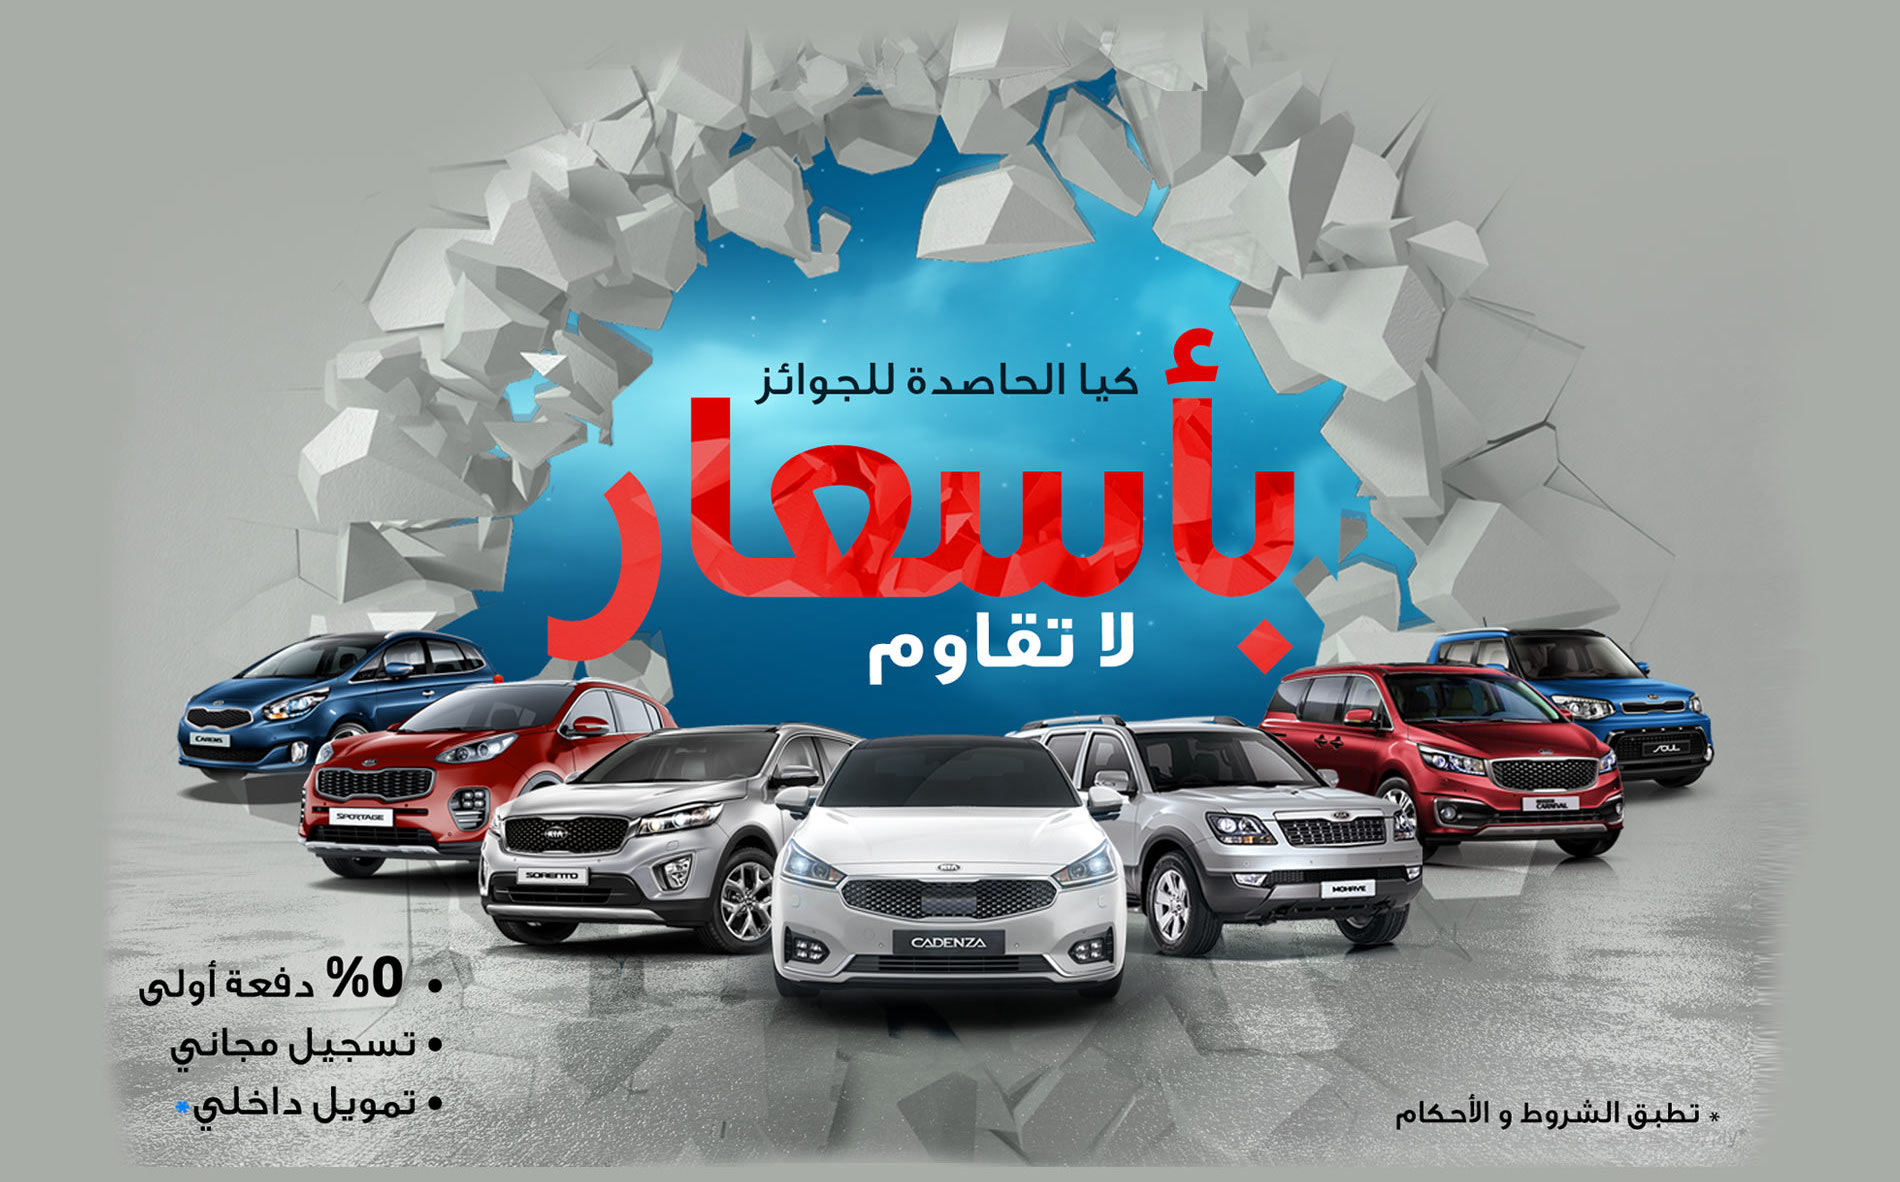 KIA, the strong rival in the auto market in Qatar